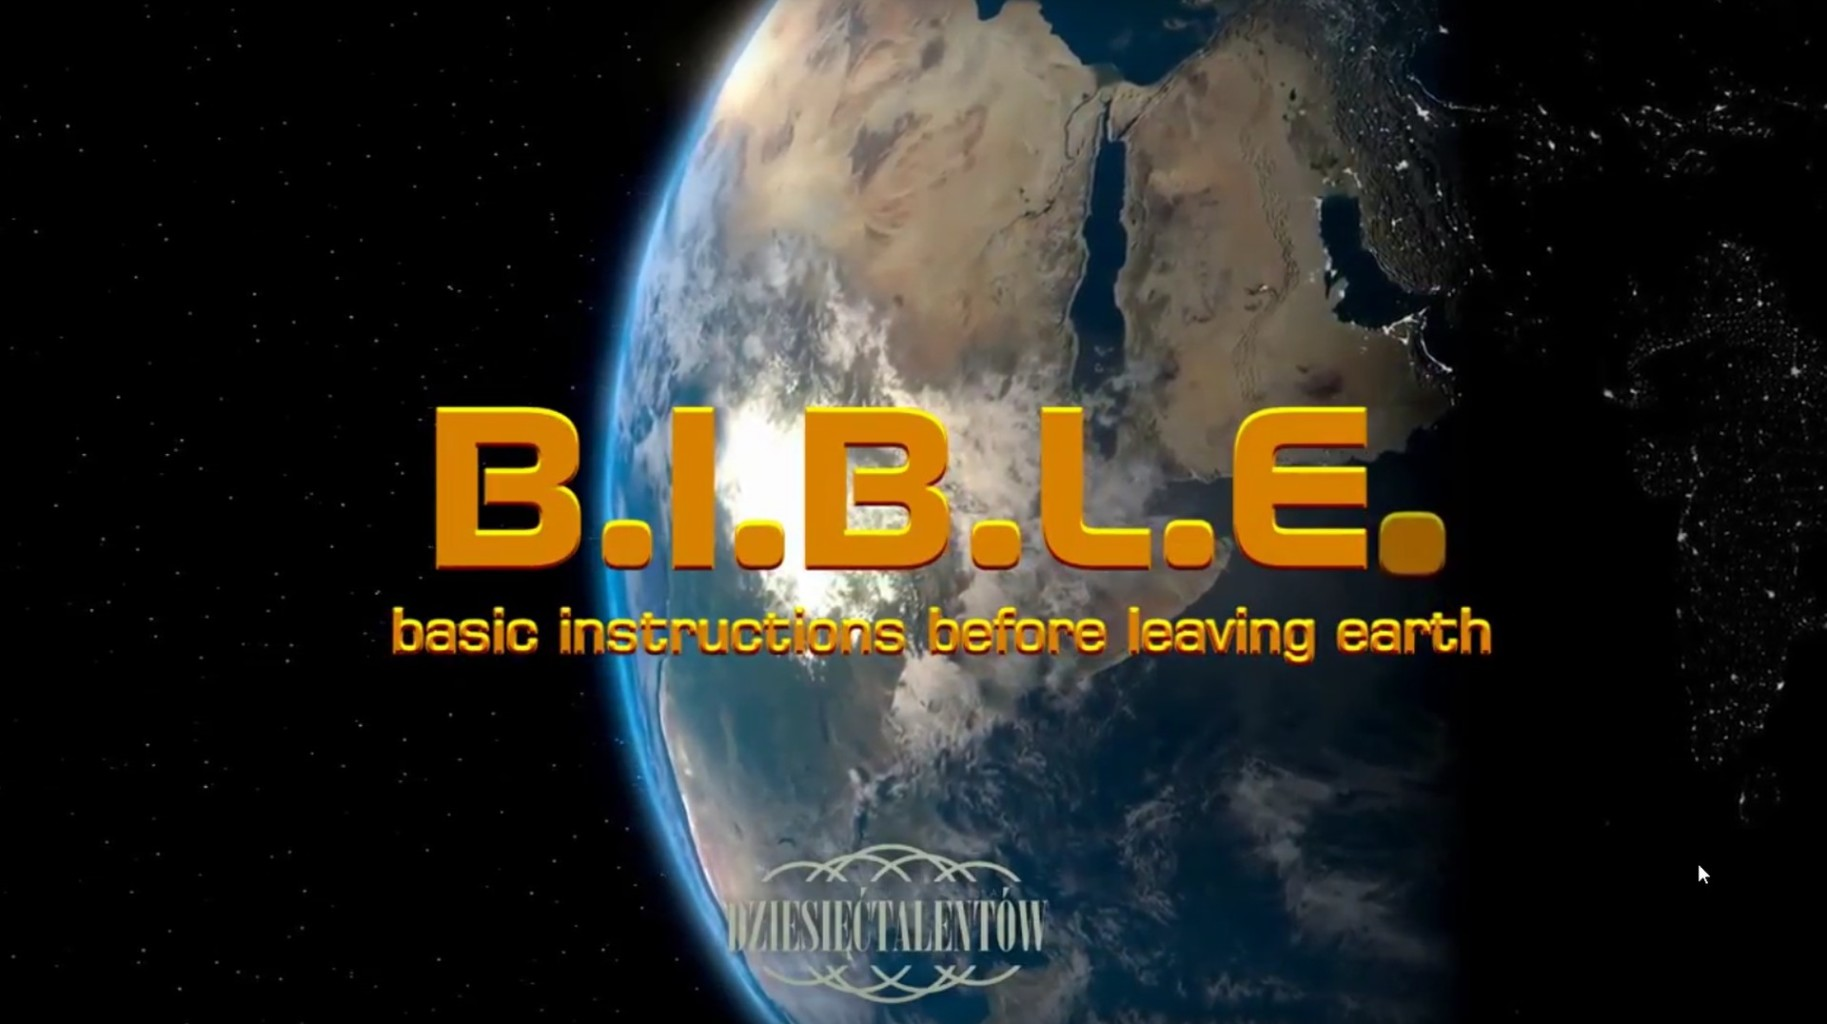 B.I.B.L.E - basic instruction before leaving earth